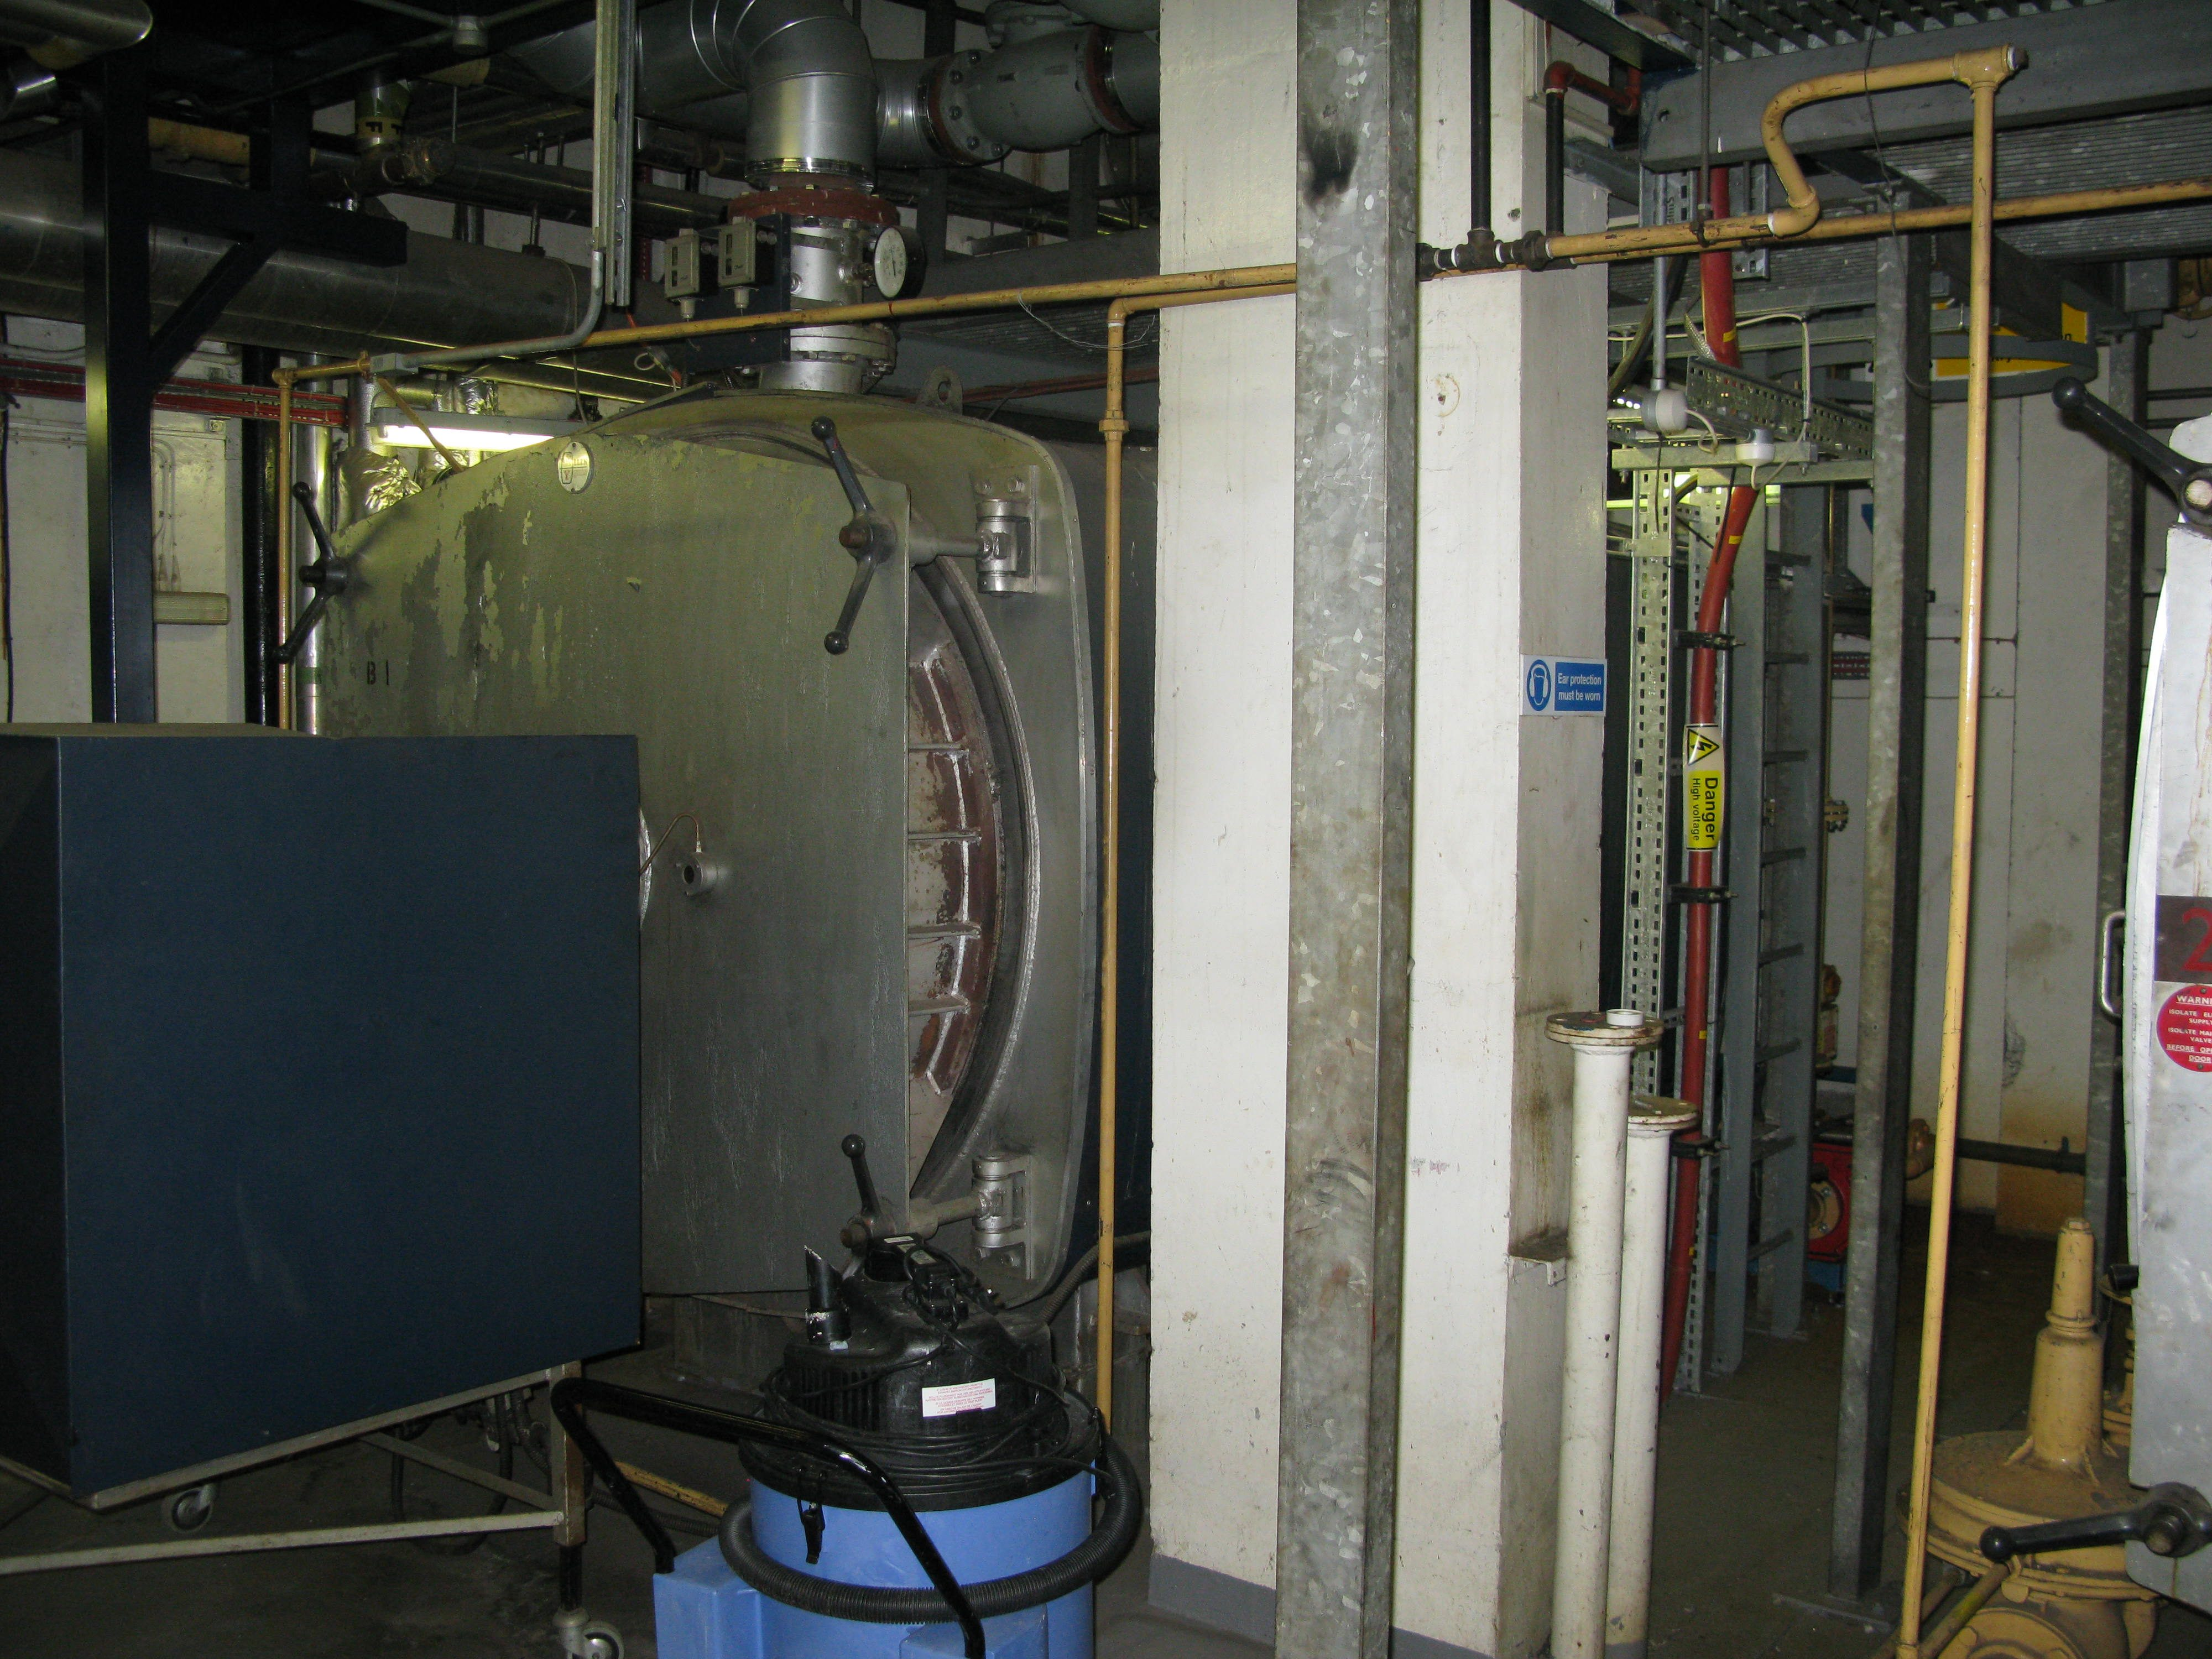 One of the main boilers